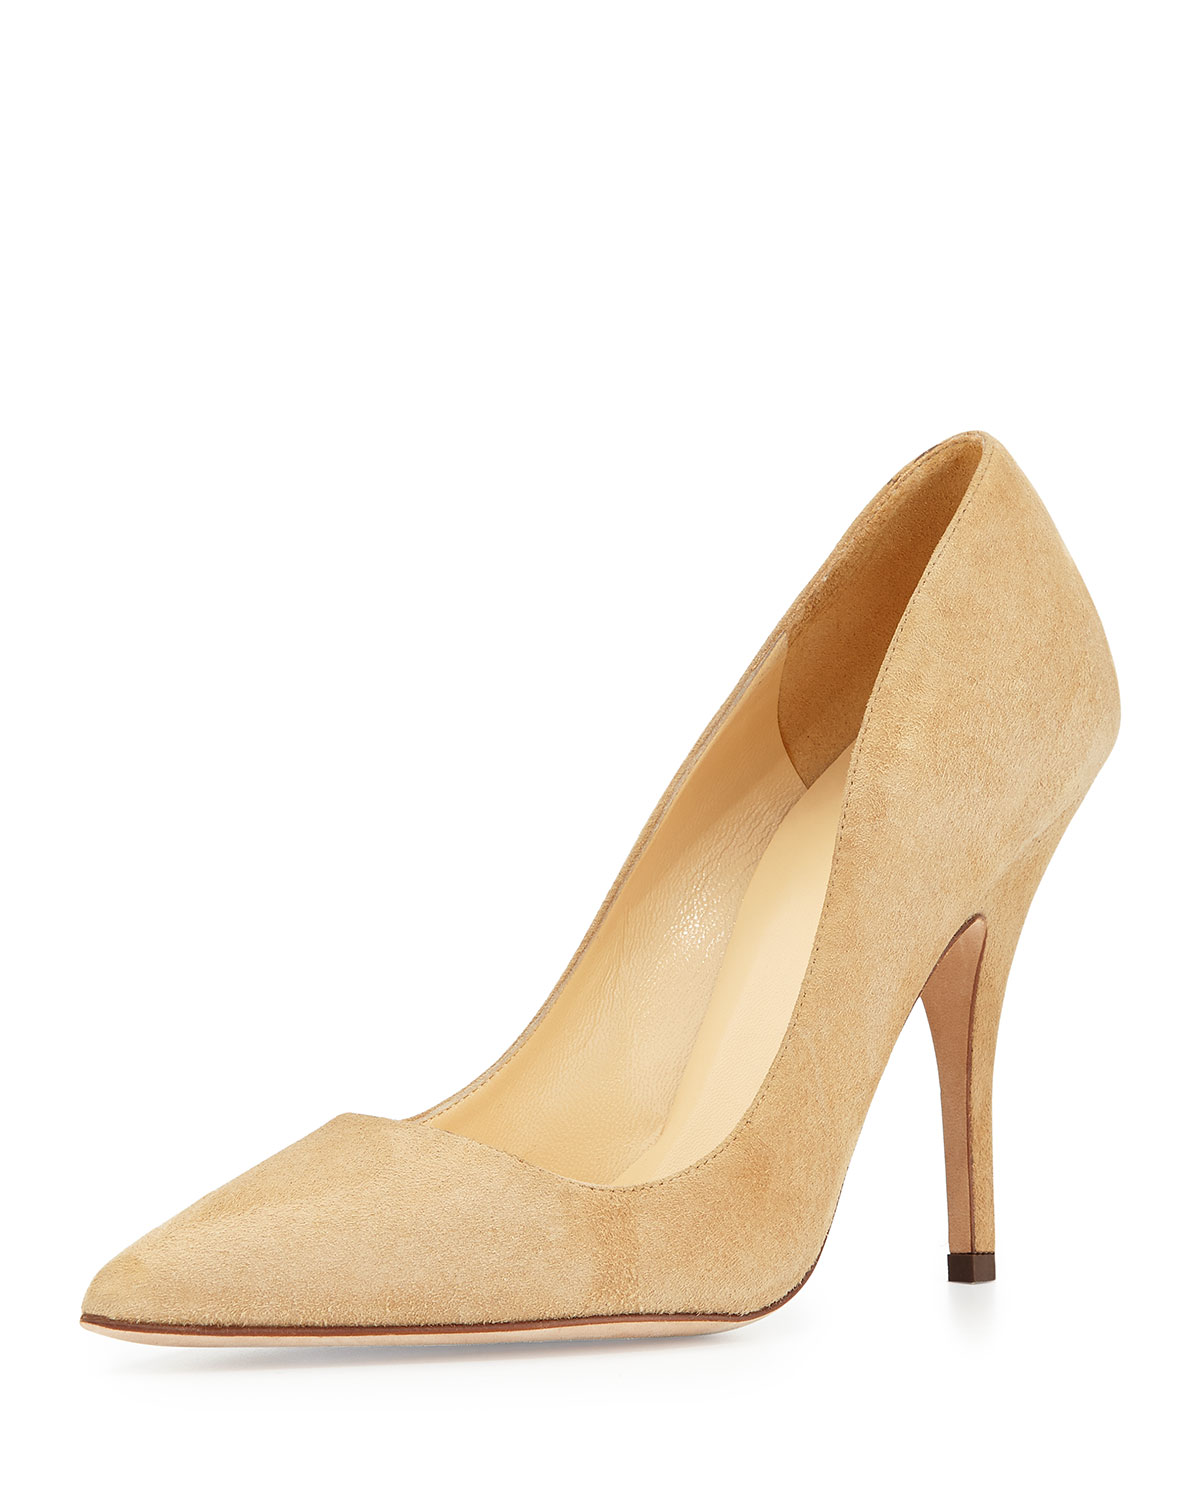 229f33eb8 kate spade new york licorice suede point-toe pumps, light camel ...